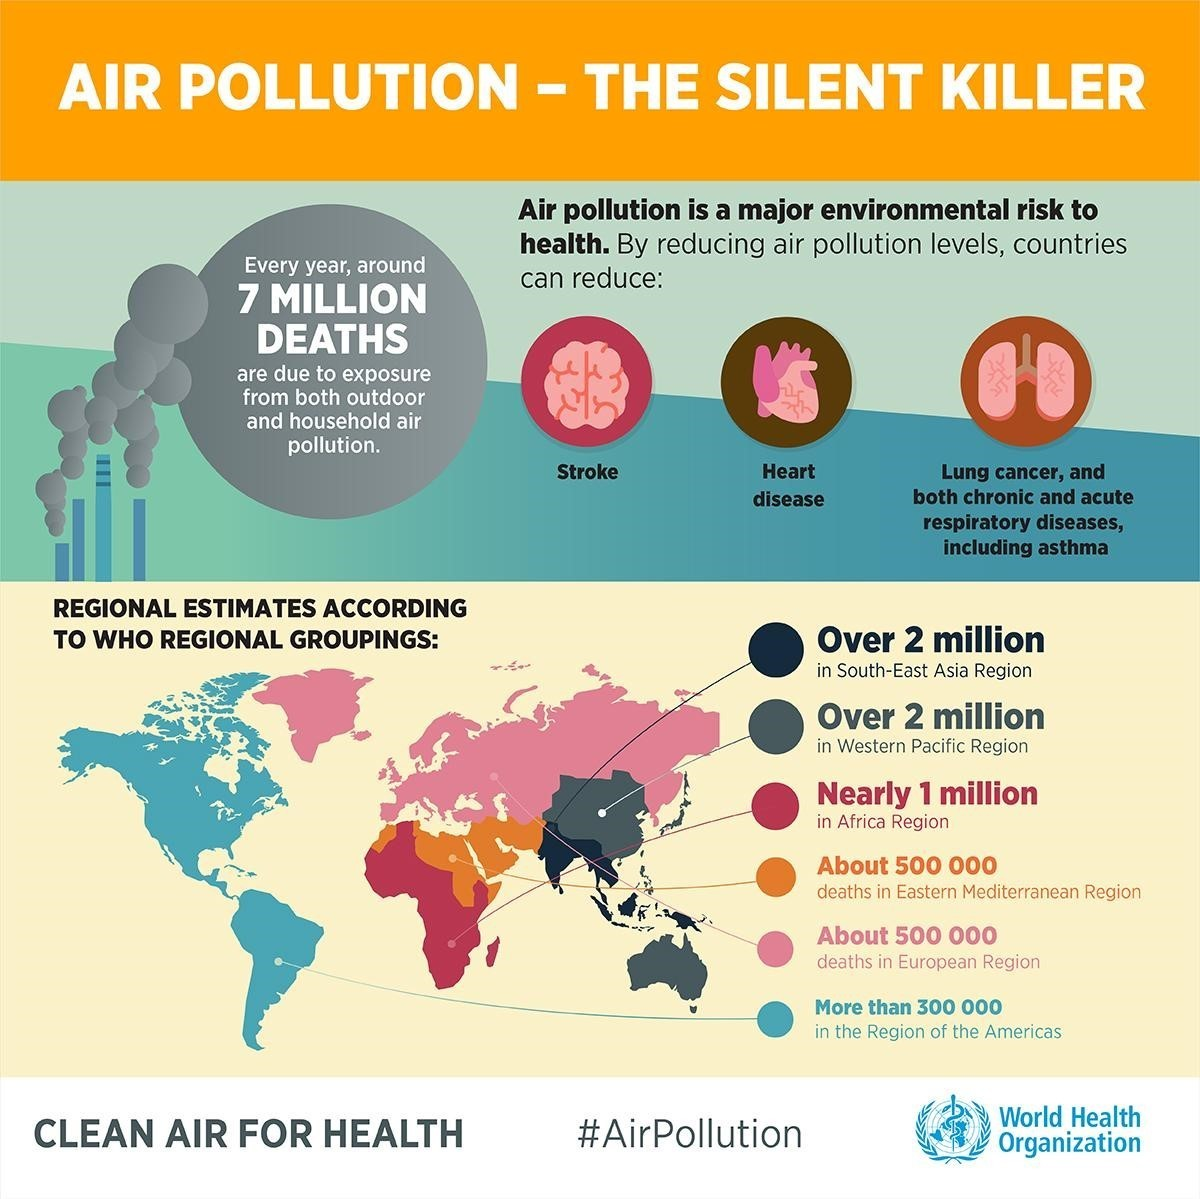 Here S A List Of The World S Most Polluted Cities It Shows How Poor Countries Are Being Hit The